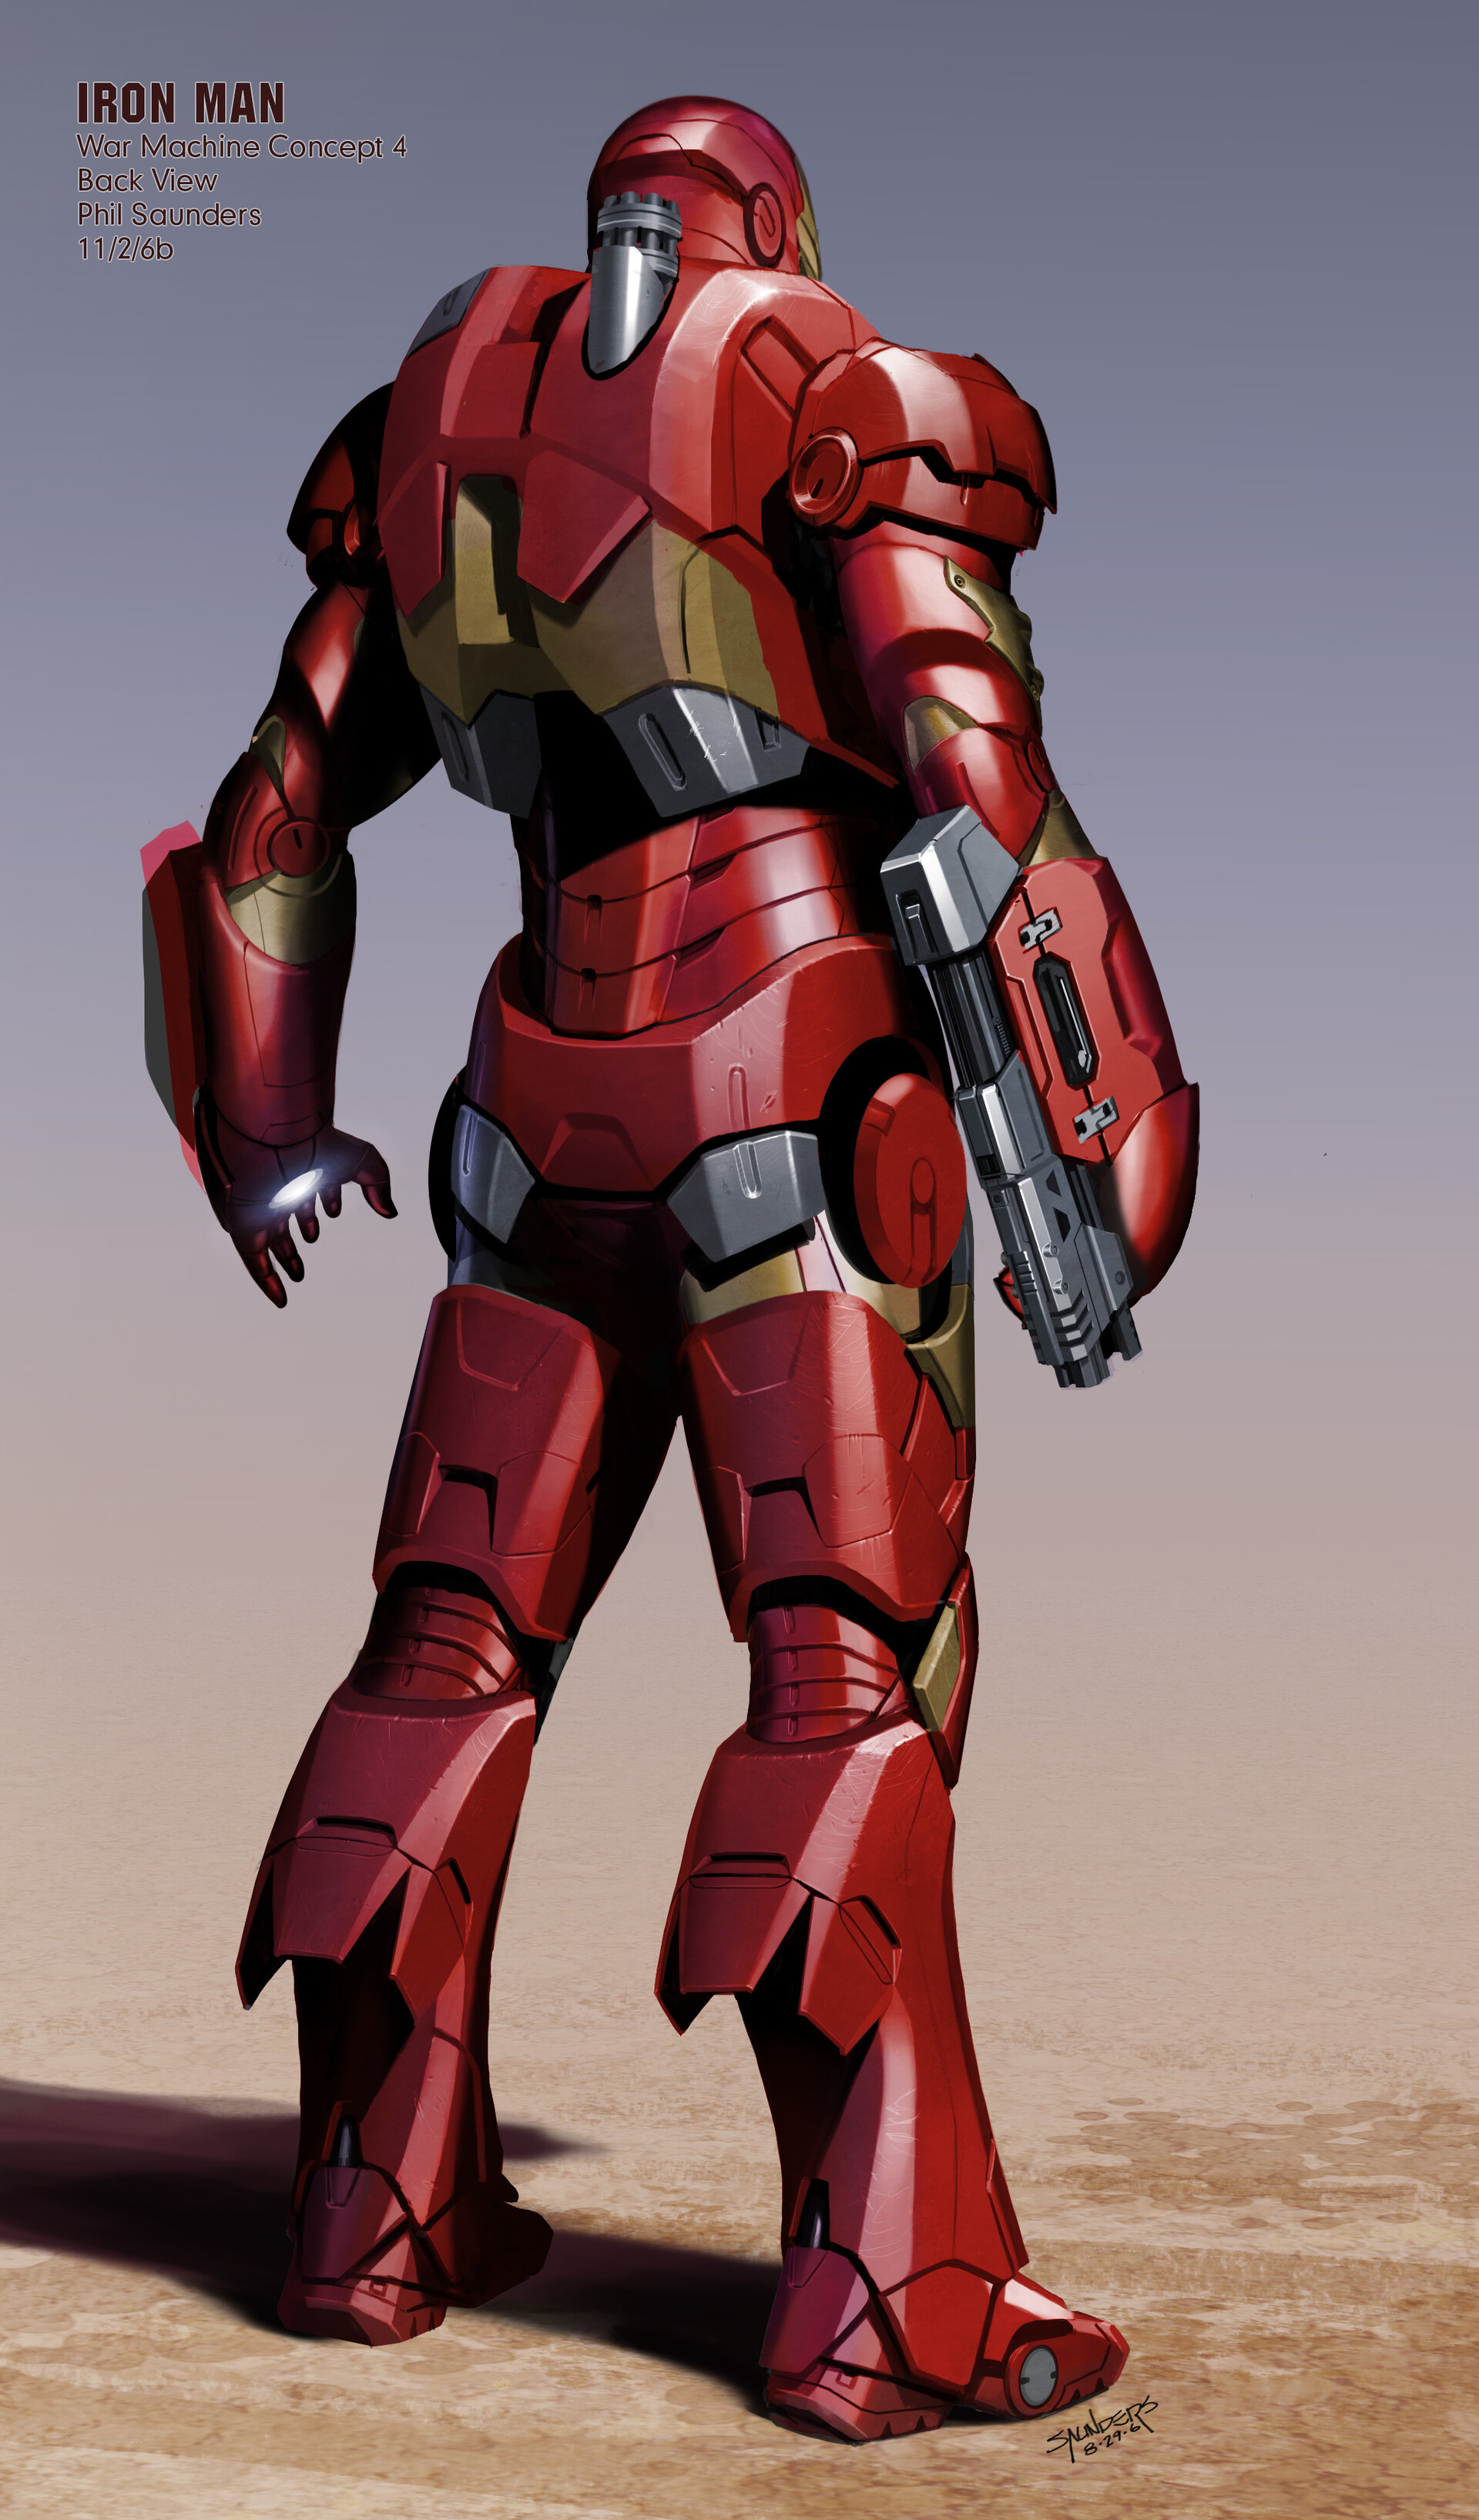 ArtStation - Iron Man (2007) - Early War Machine concepts